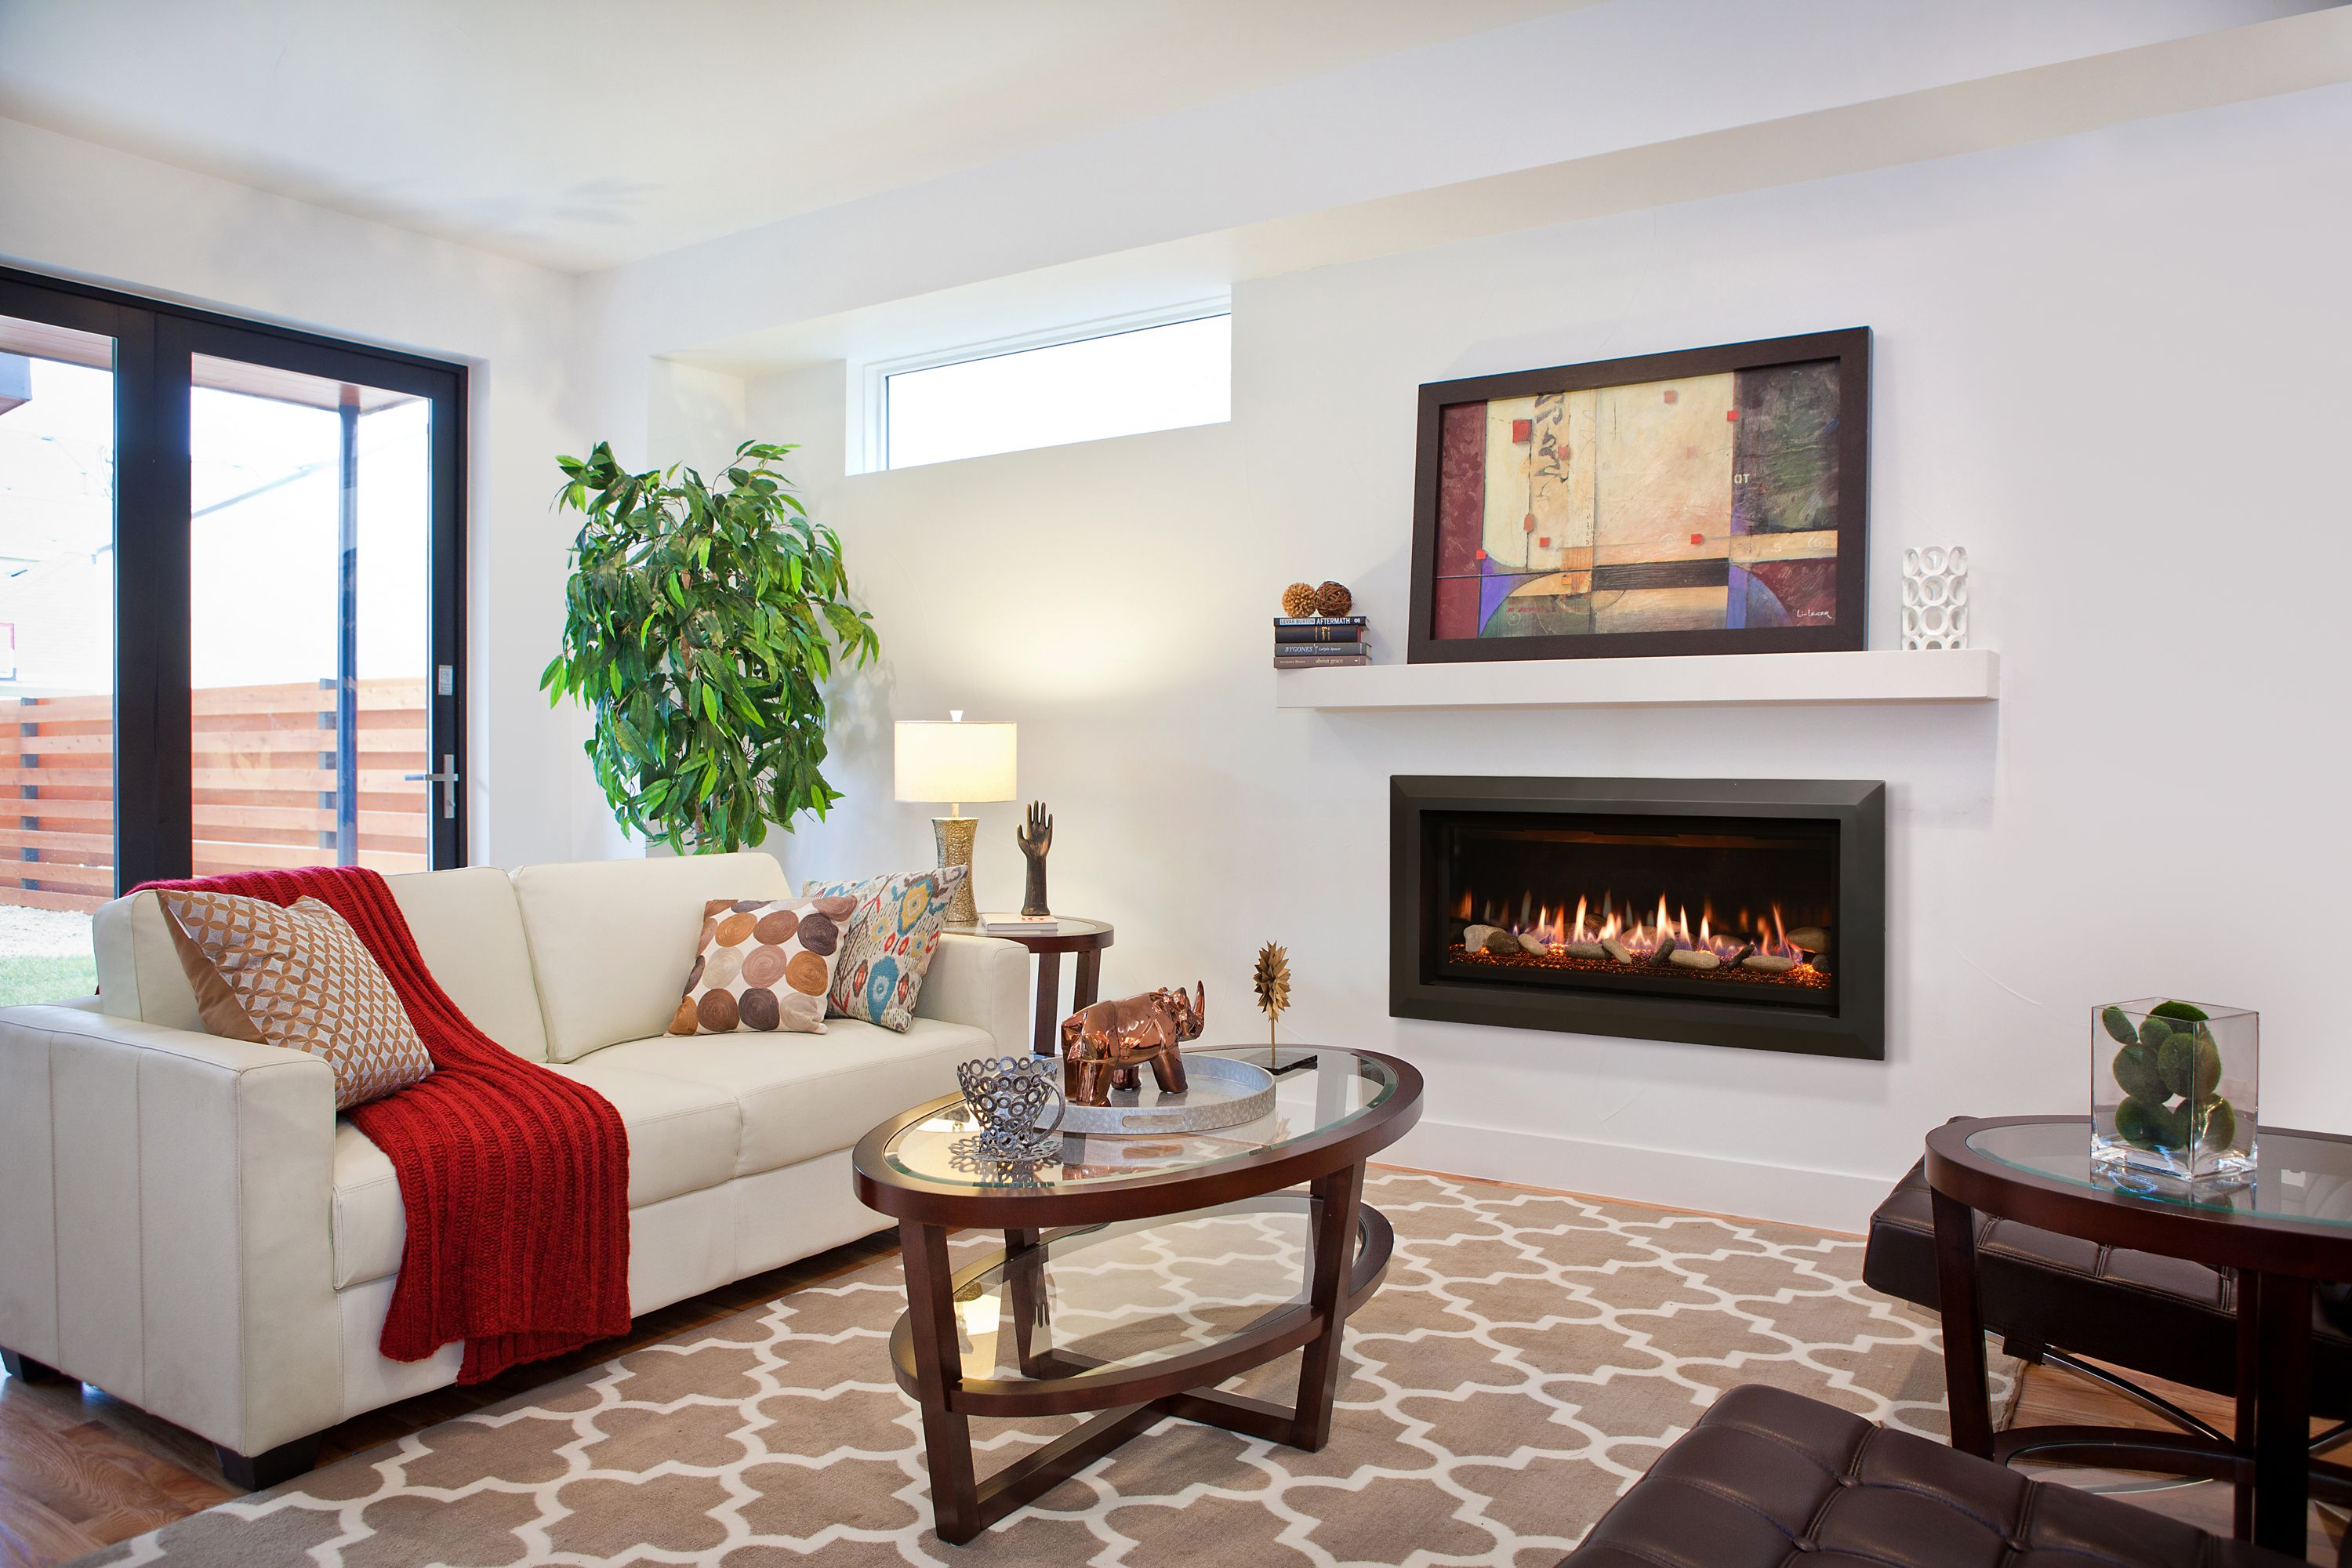 This Is Our Slayton 36 Direct Vent Linear Gas Fireplace For More Information Visit Us At Www Kozyheat Products